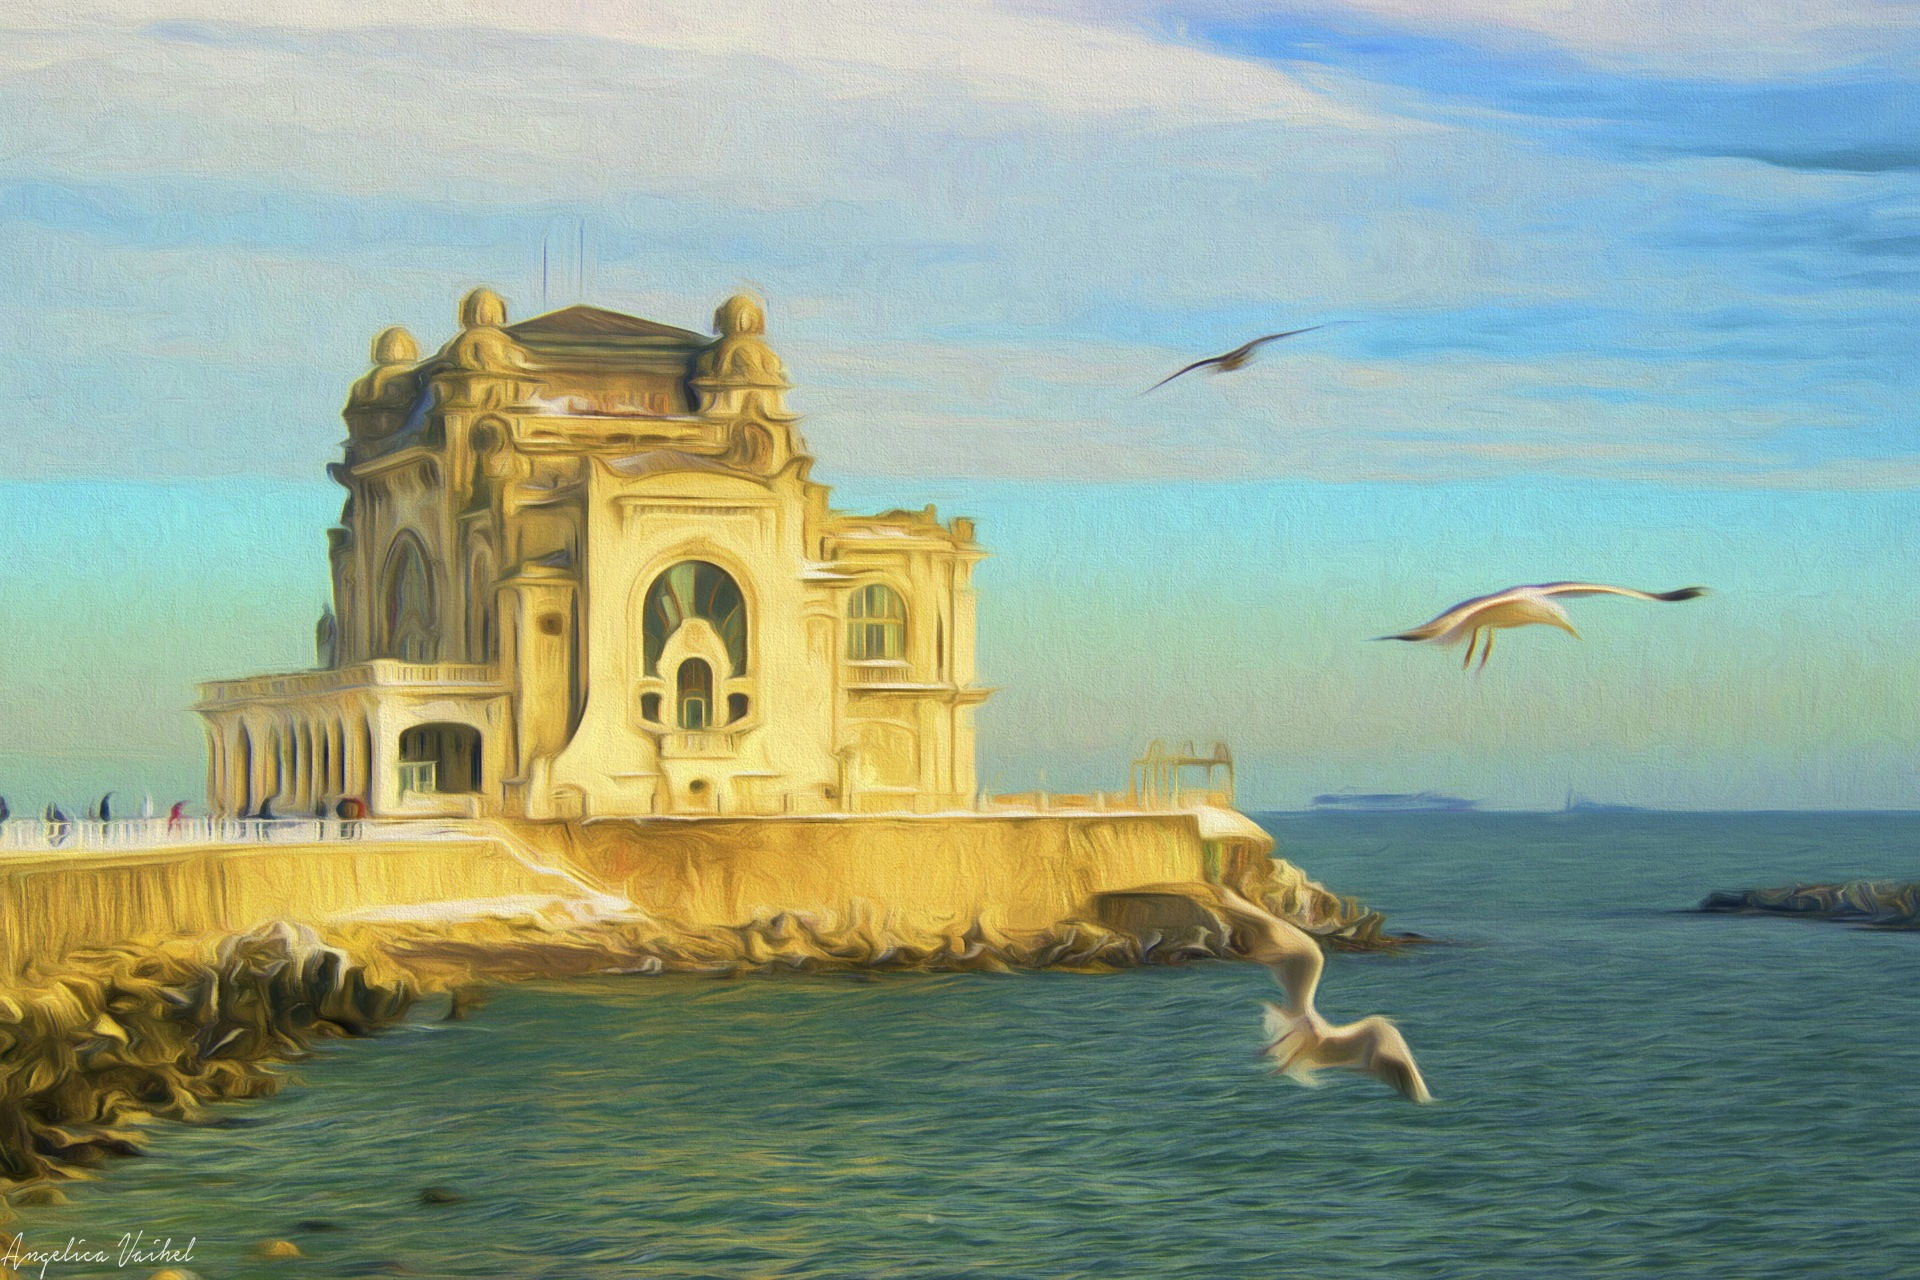 old casino and seagulls by Angelica Vaihel